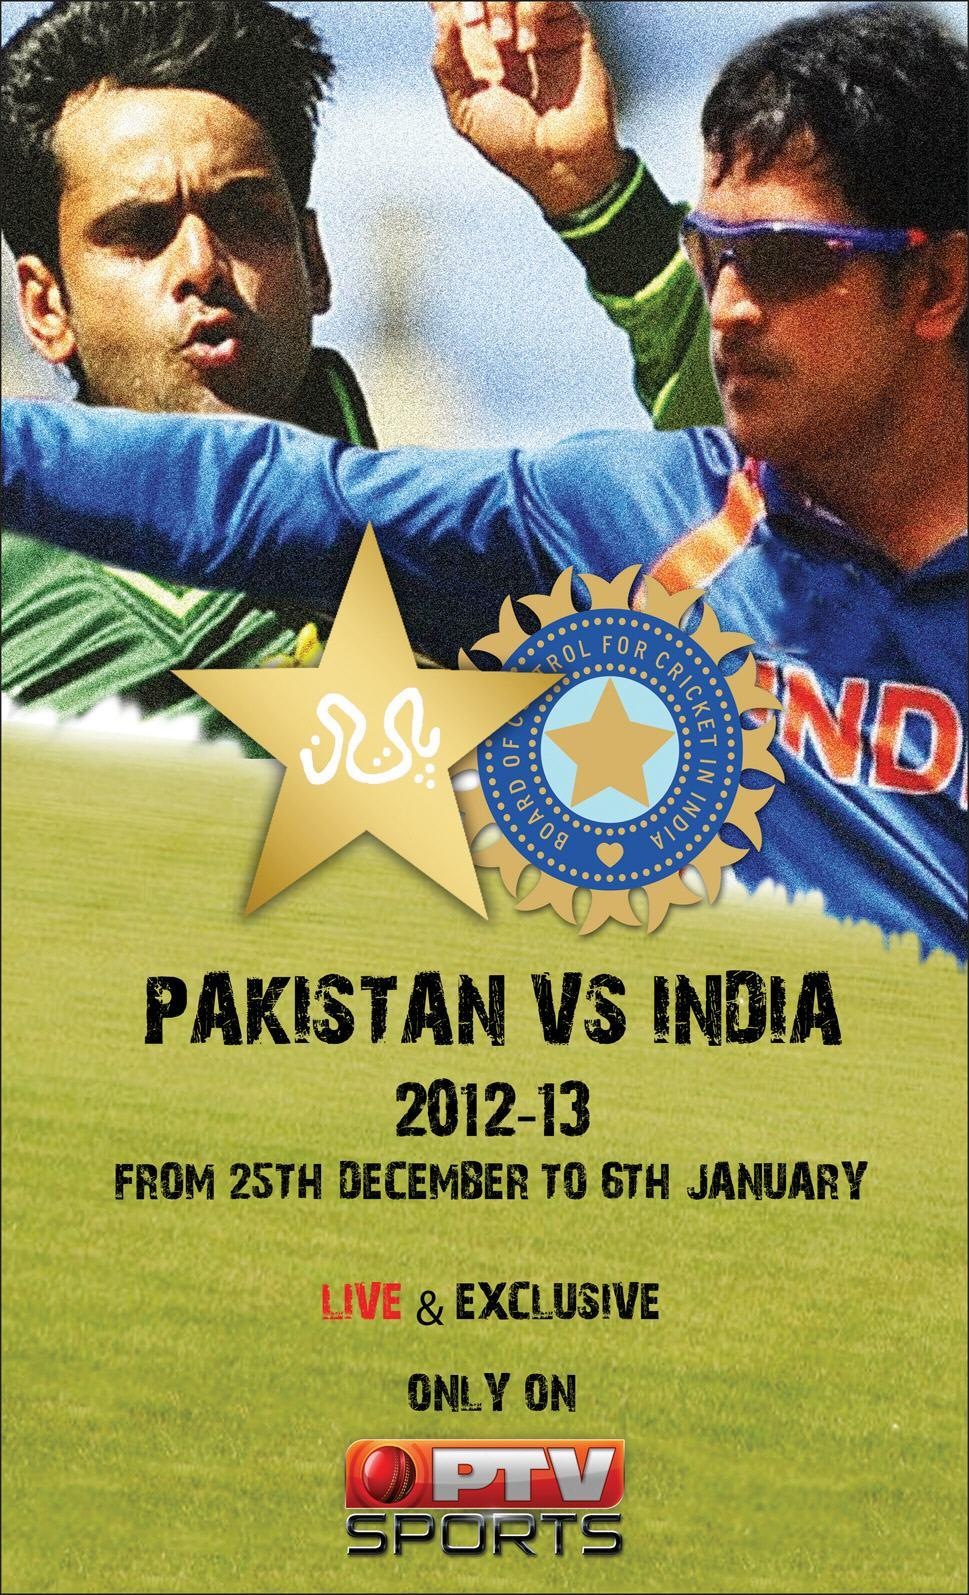 Pakistan VS India Cricket Series Schedule 2013 Pakistan VS India Cricket Series Schedule 2012 2013